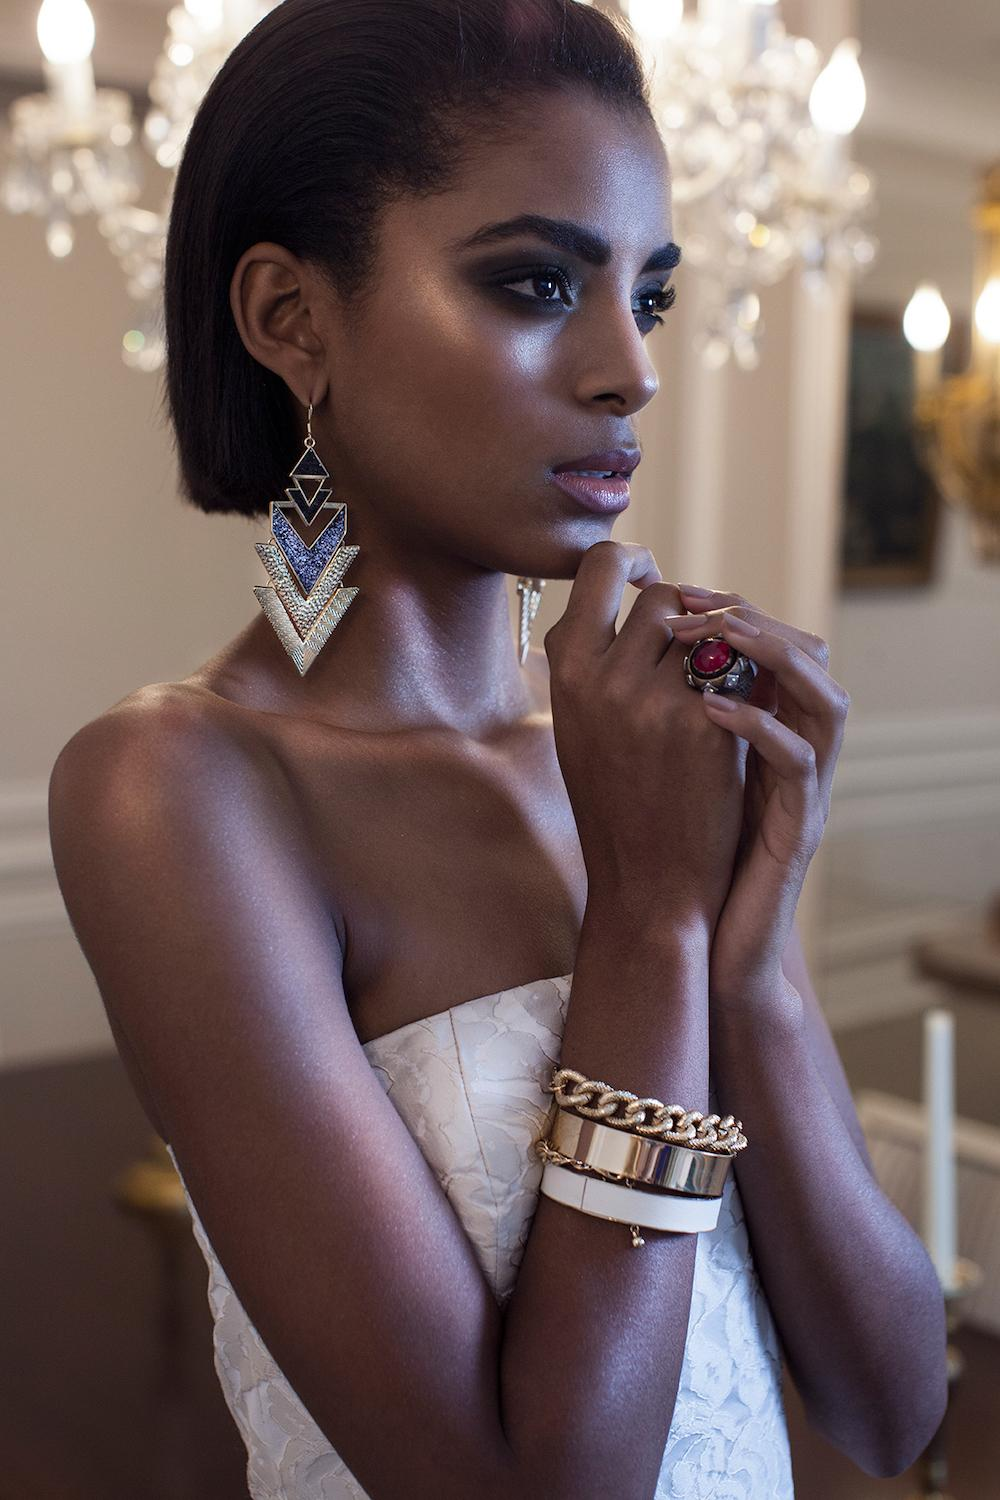 Large bracelets and rings take their place in modern fashion trends